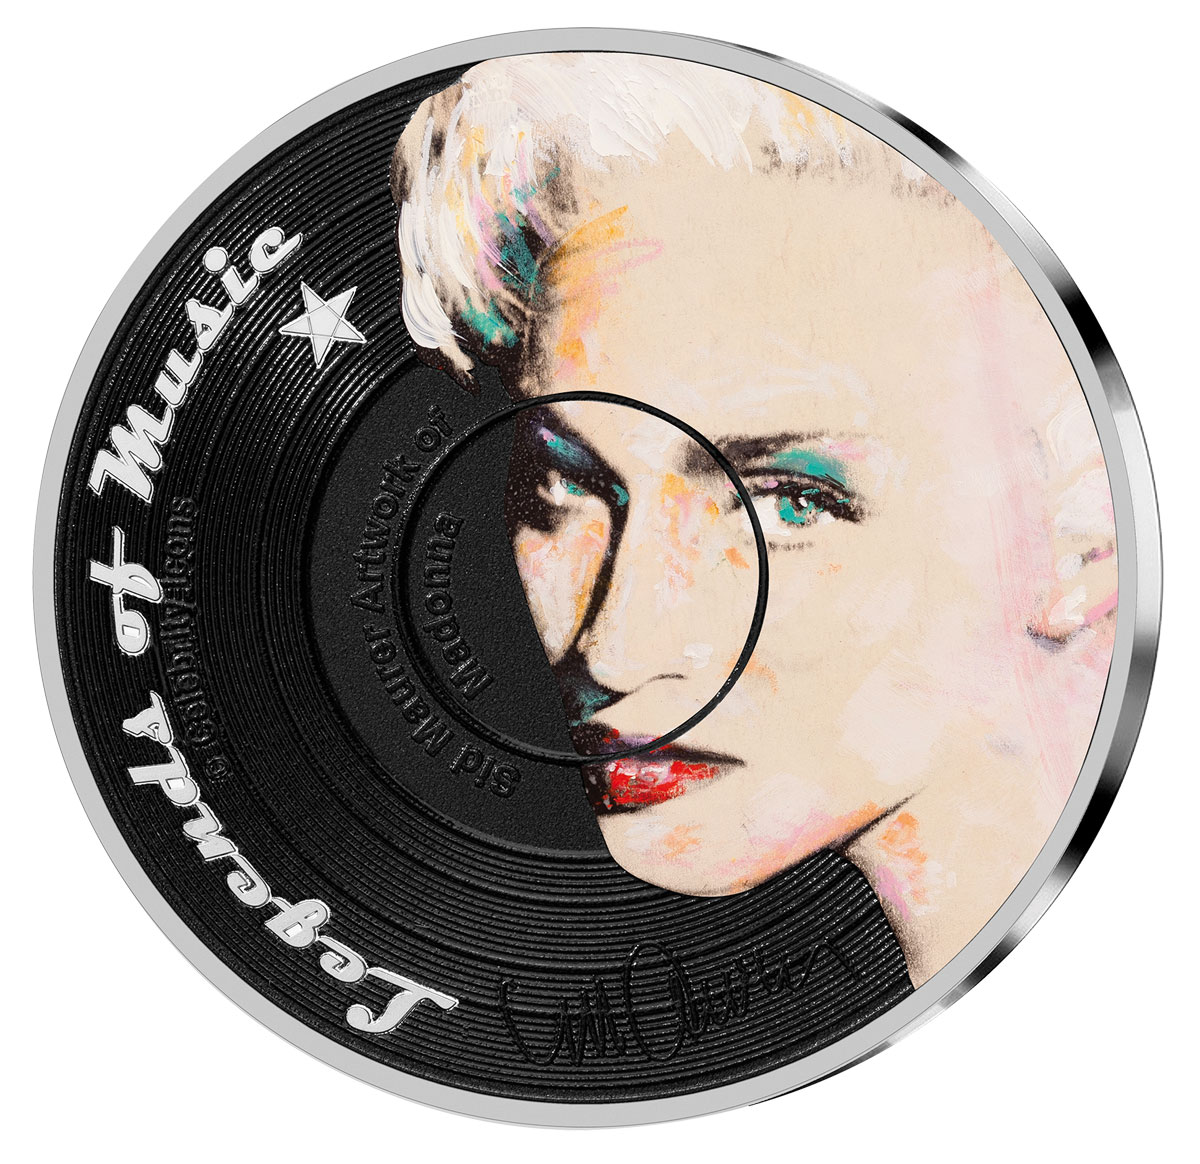 2019 Solomon Islands Legends of Music - Madonna 1 oz Silver Colorized Sid Maurer $5 Coin GEM Proof